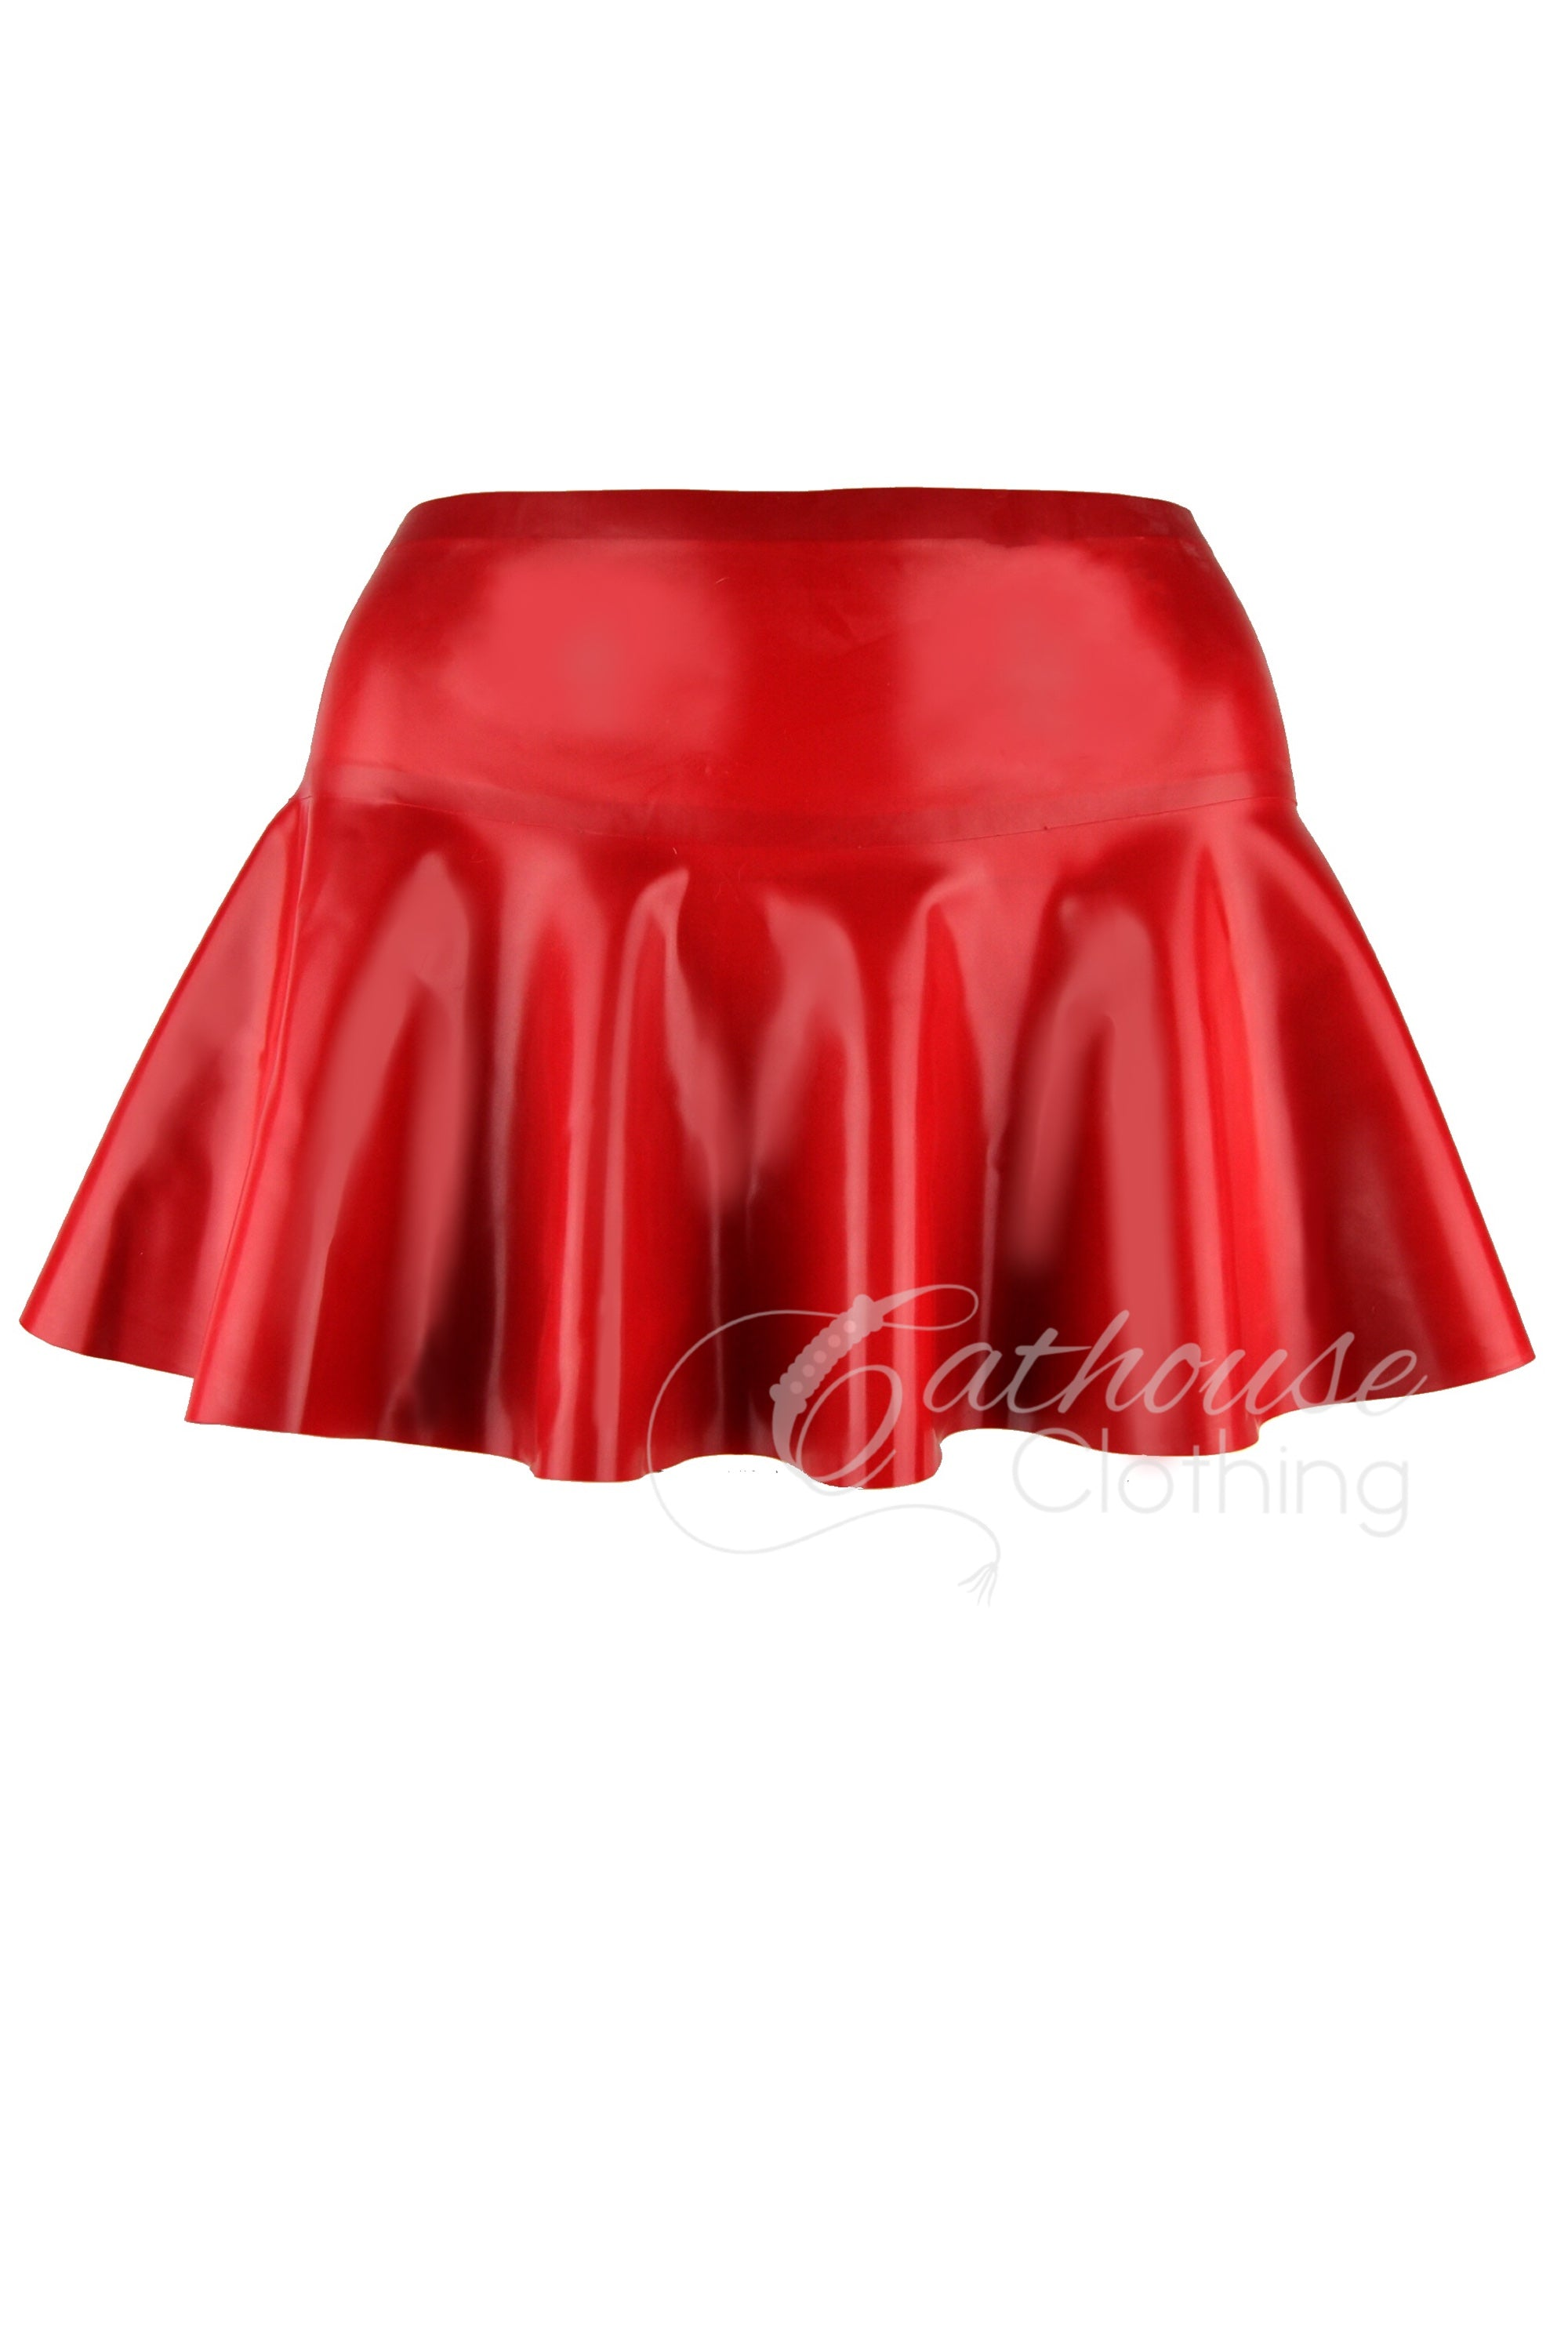 Latex cheerleader skirt